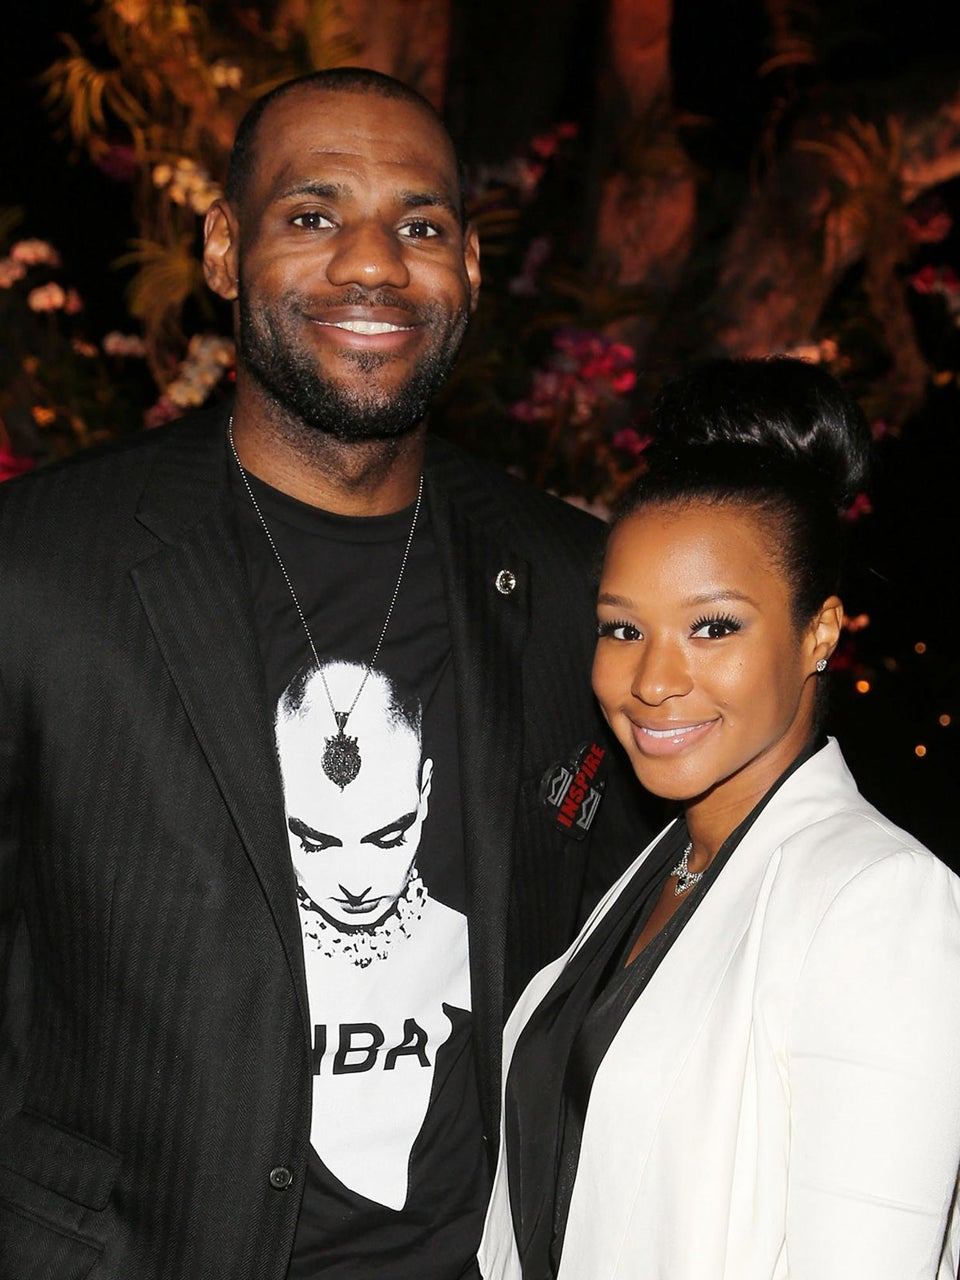 LeBron James and Savannah Brinson Dance-Off for Charity